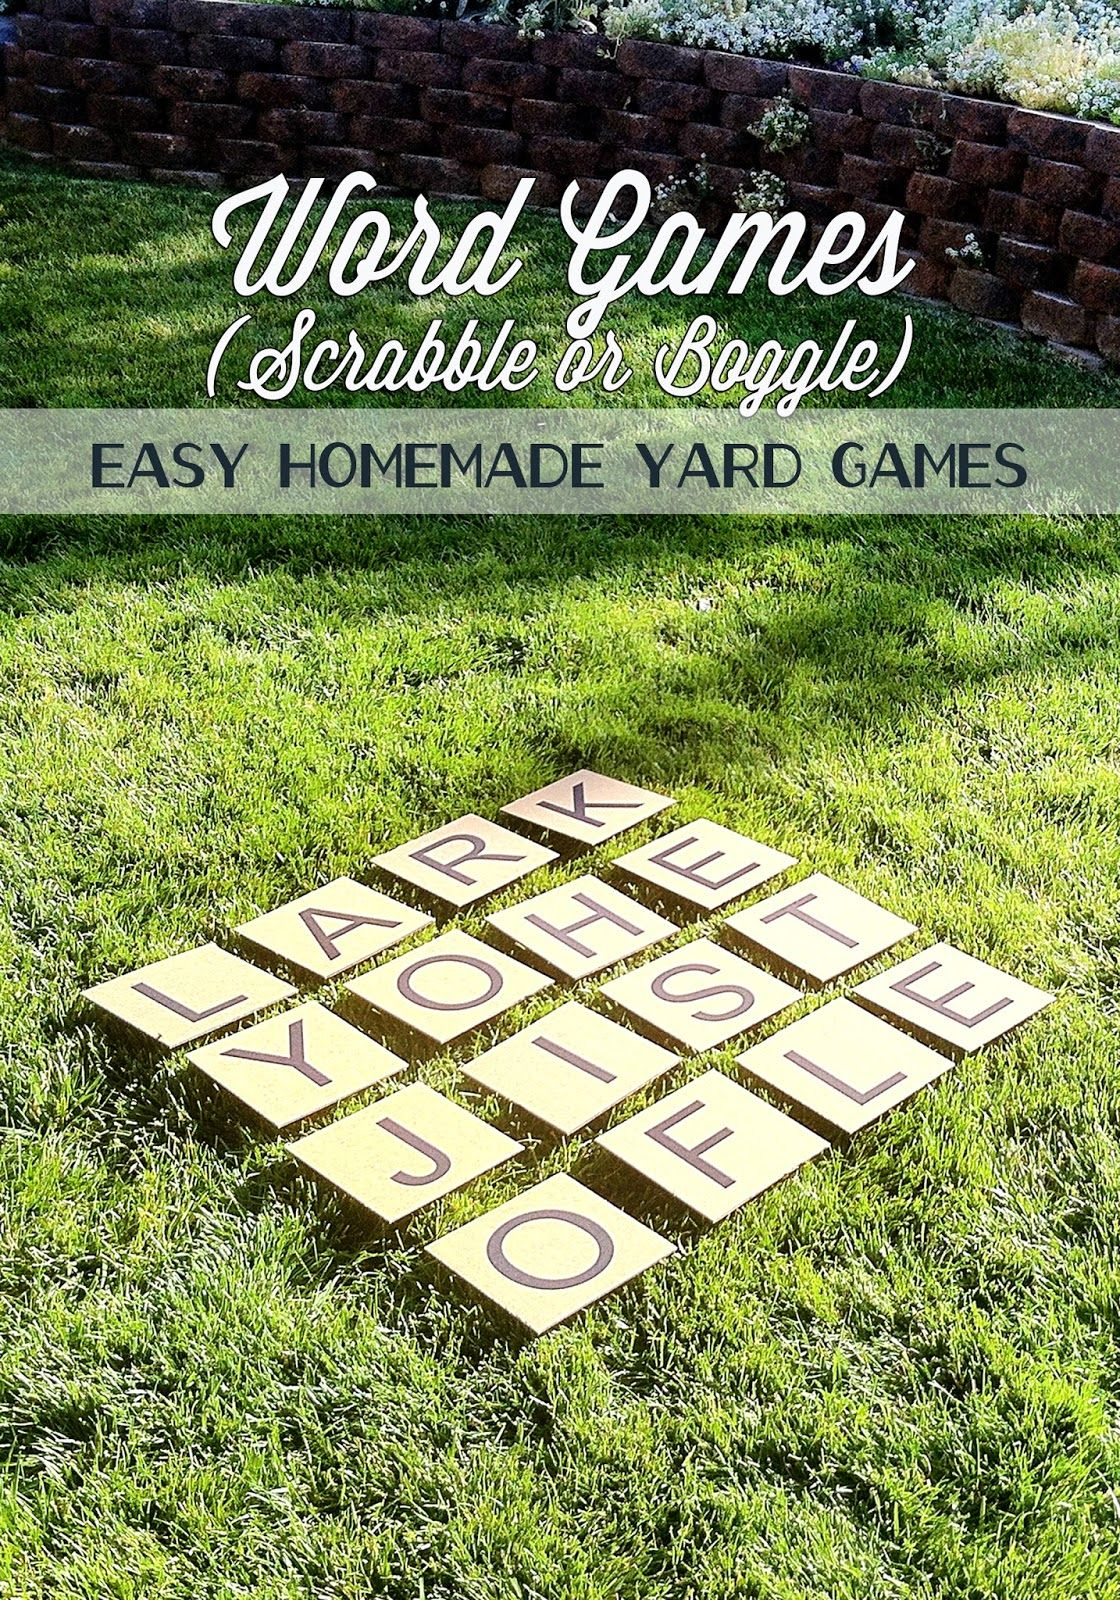 cardboard yard games scrabble or boggle this summer you can